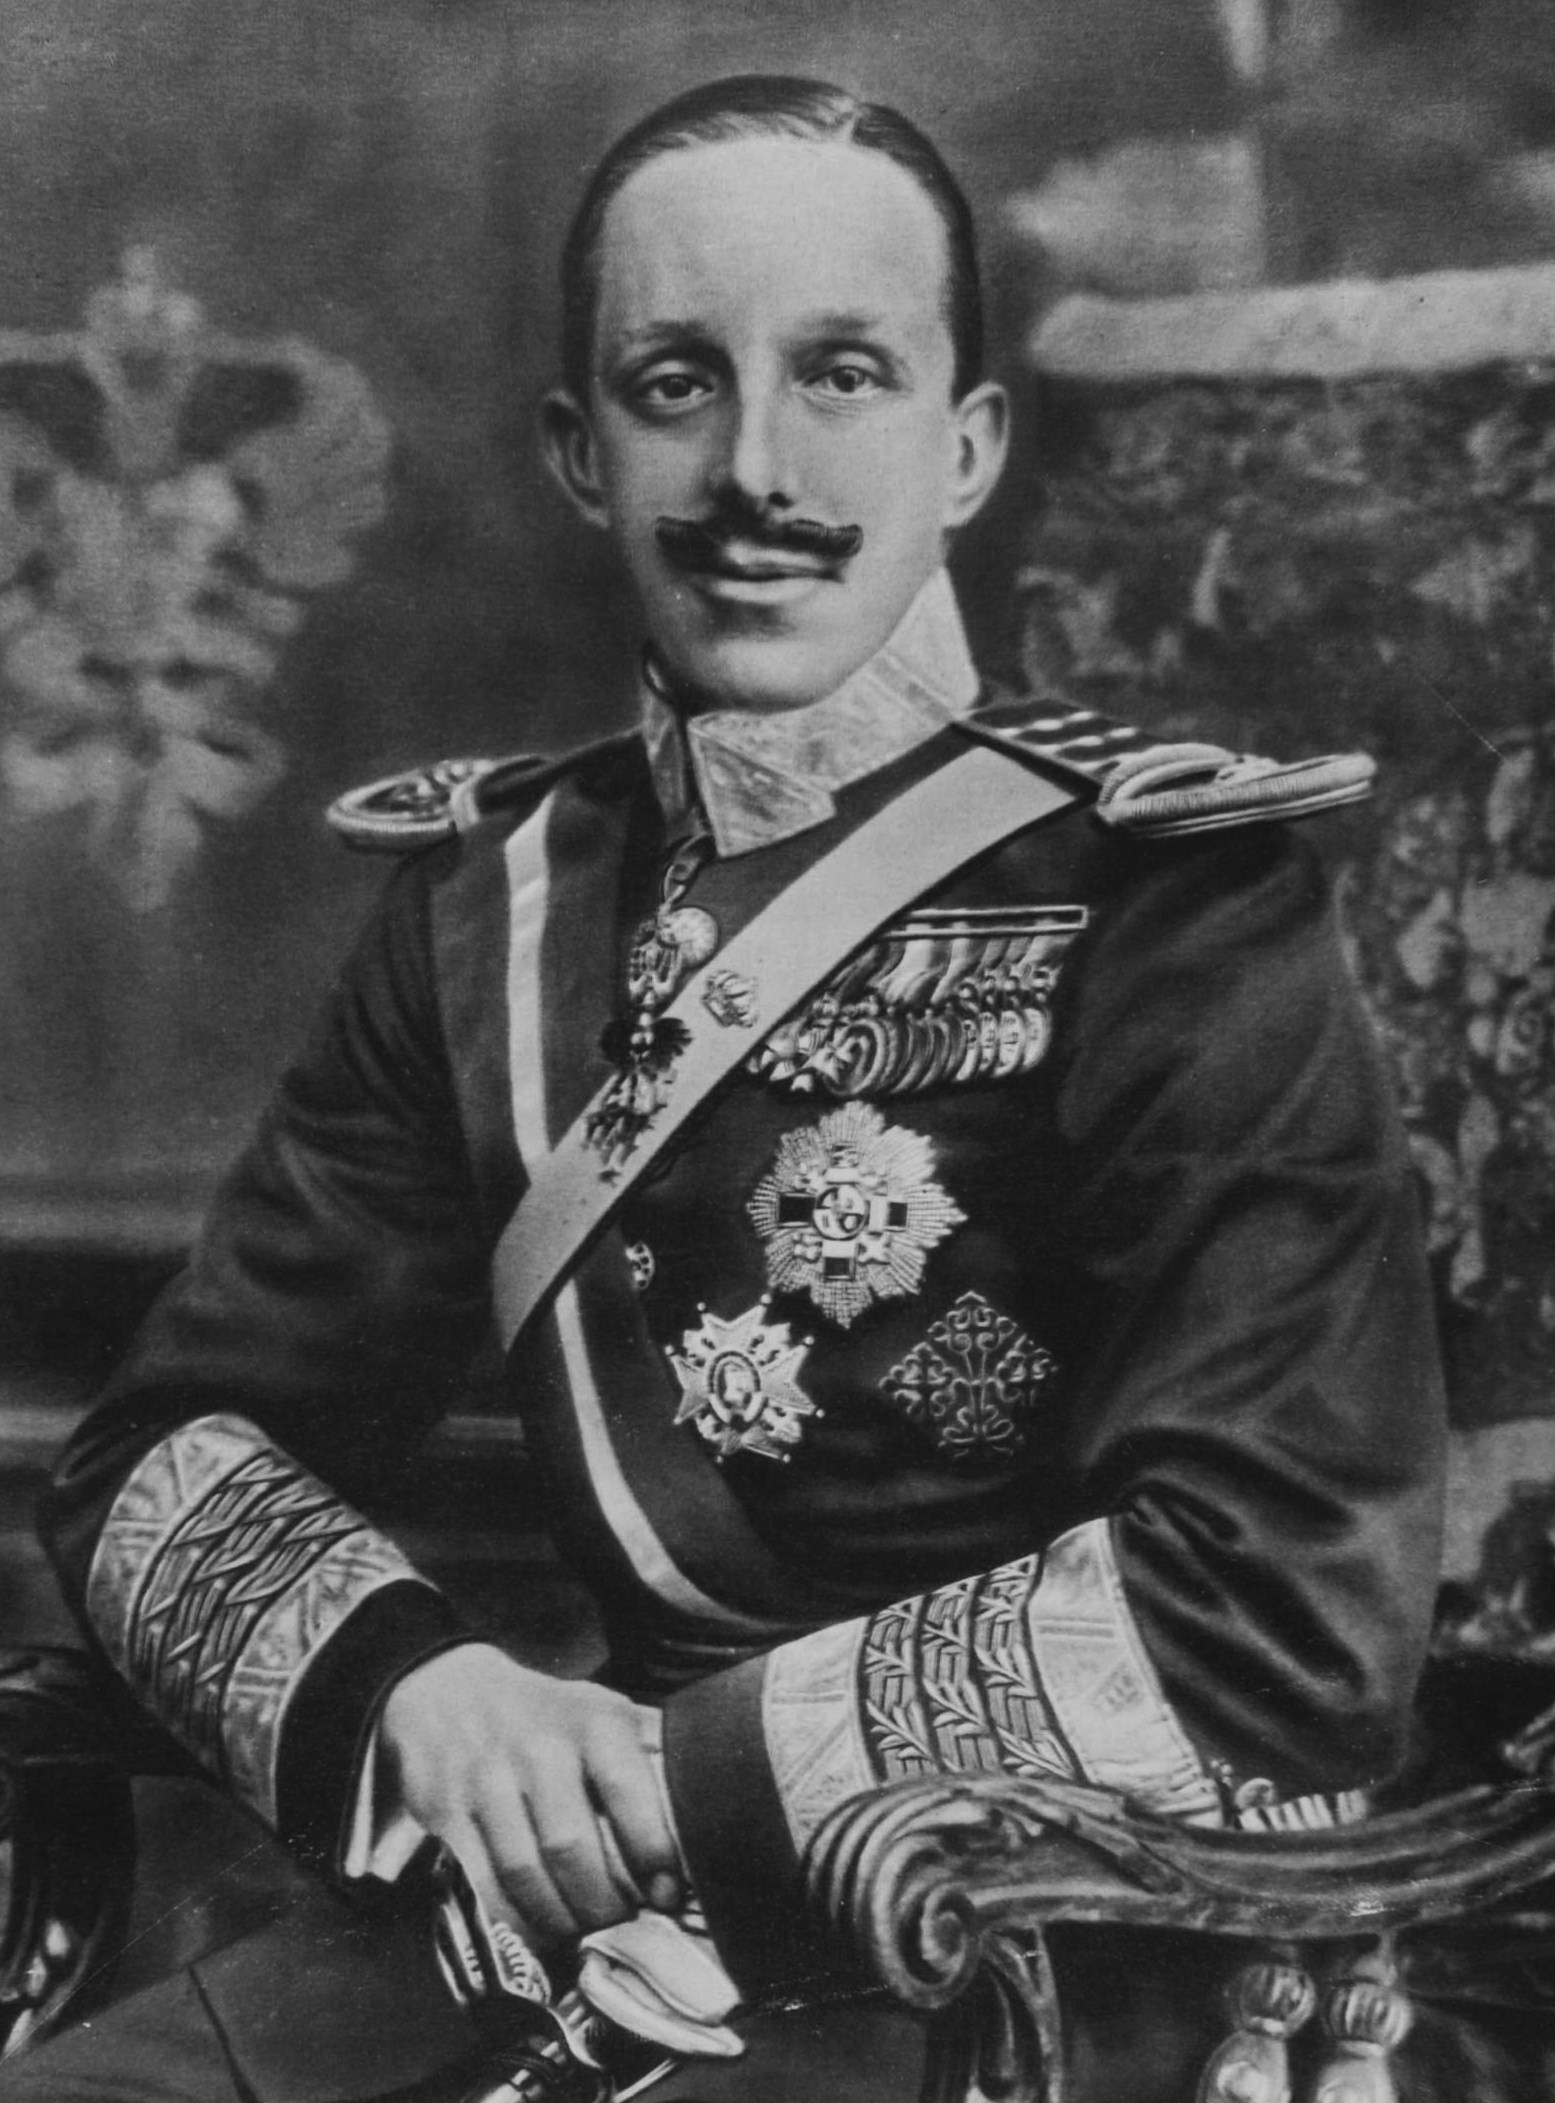 a biography of alfonso xiii of spain He was the posthumous son of alfonso xii of spain but it remains a useful biography, not least because the author knew alfonso quite well.